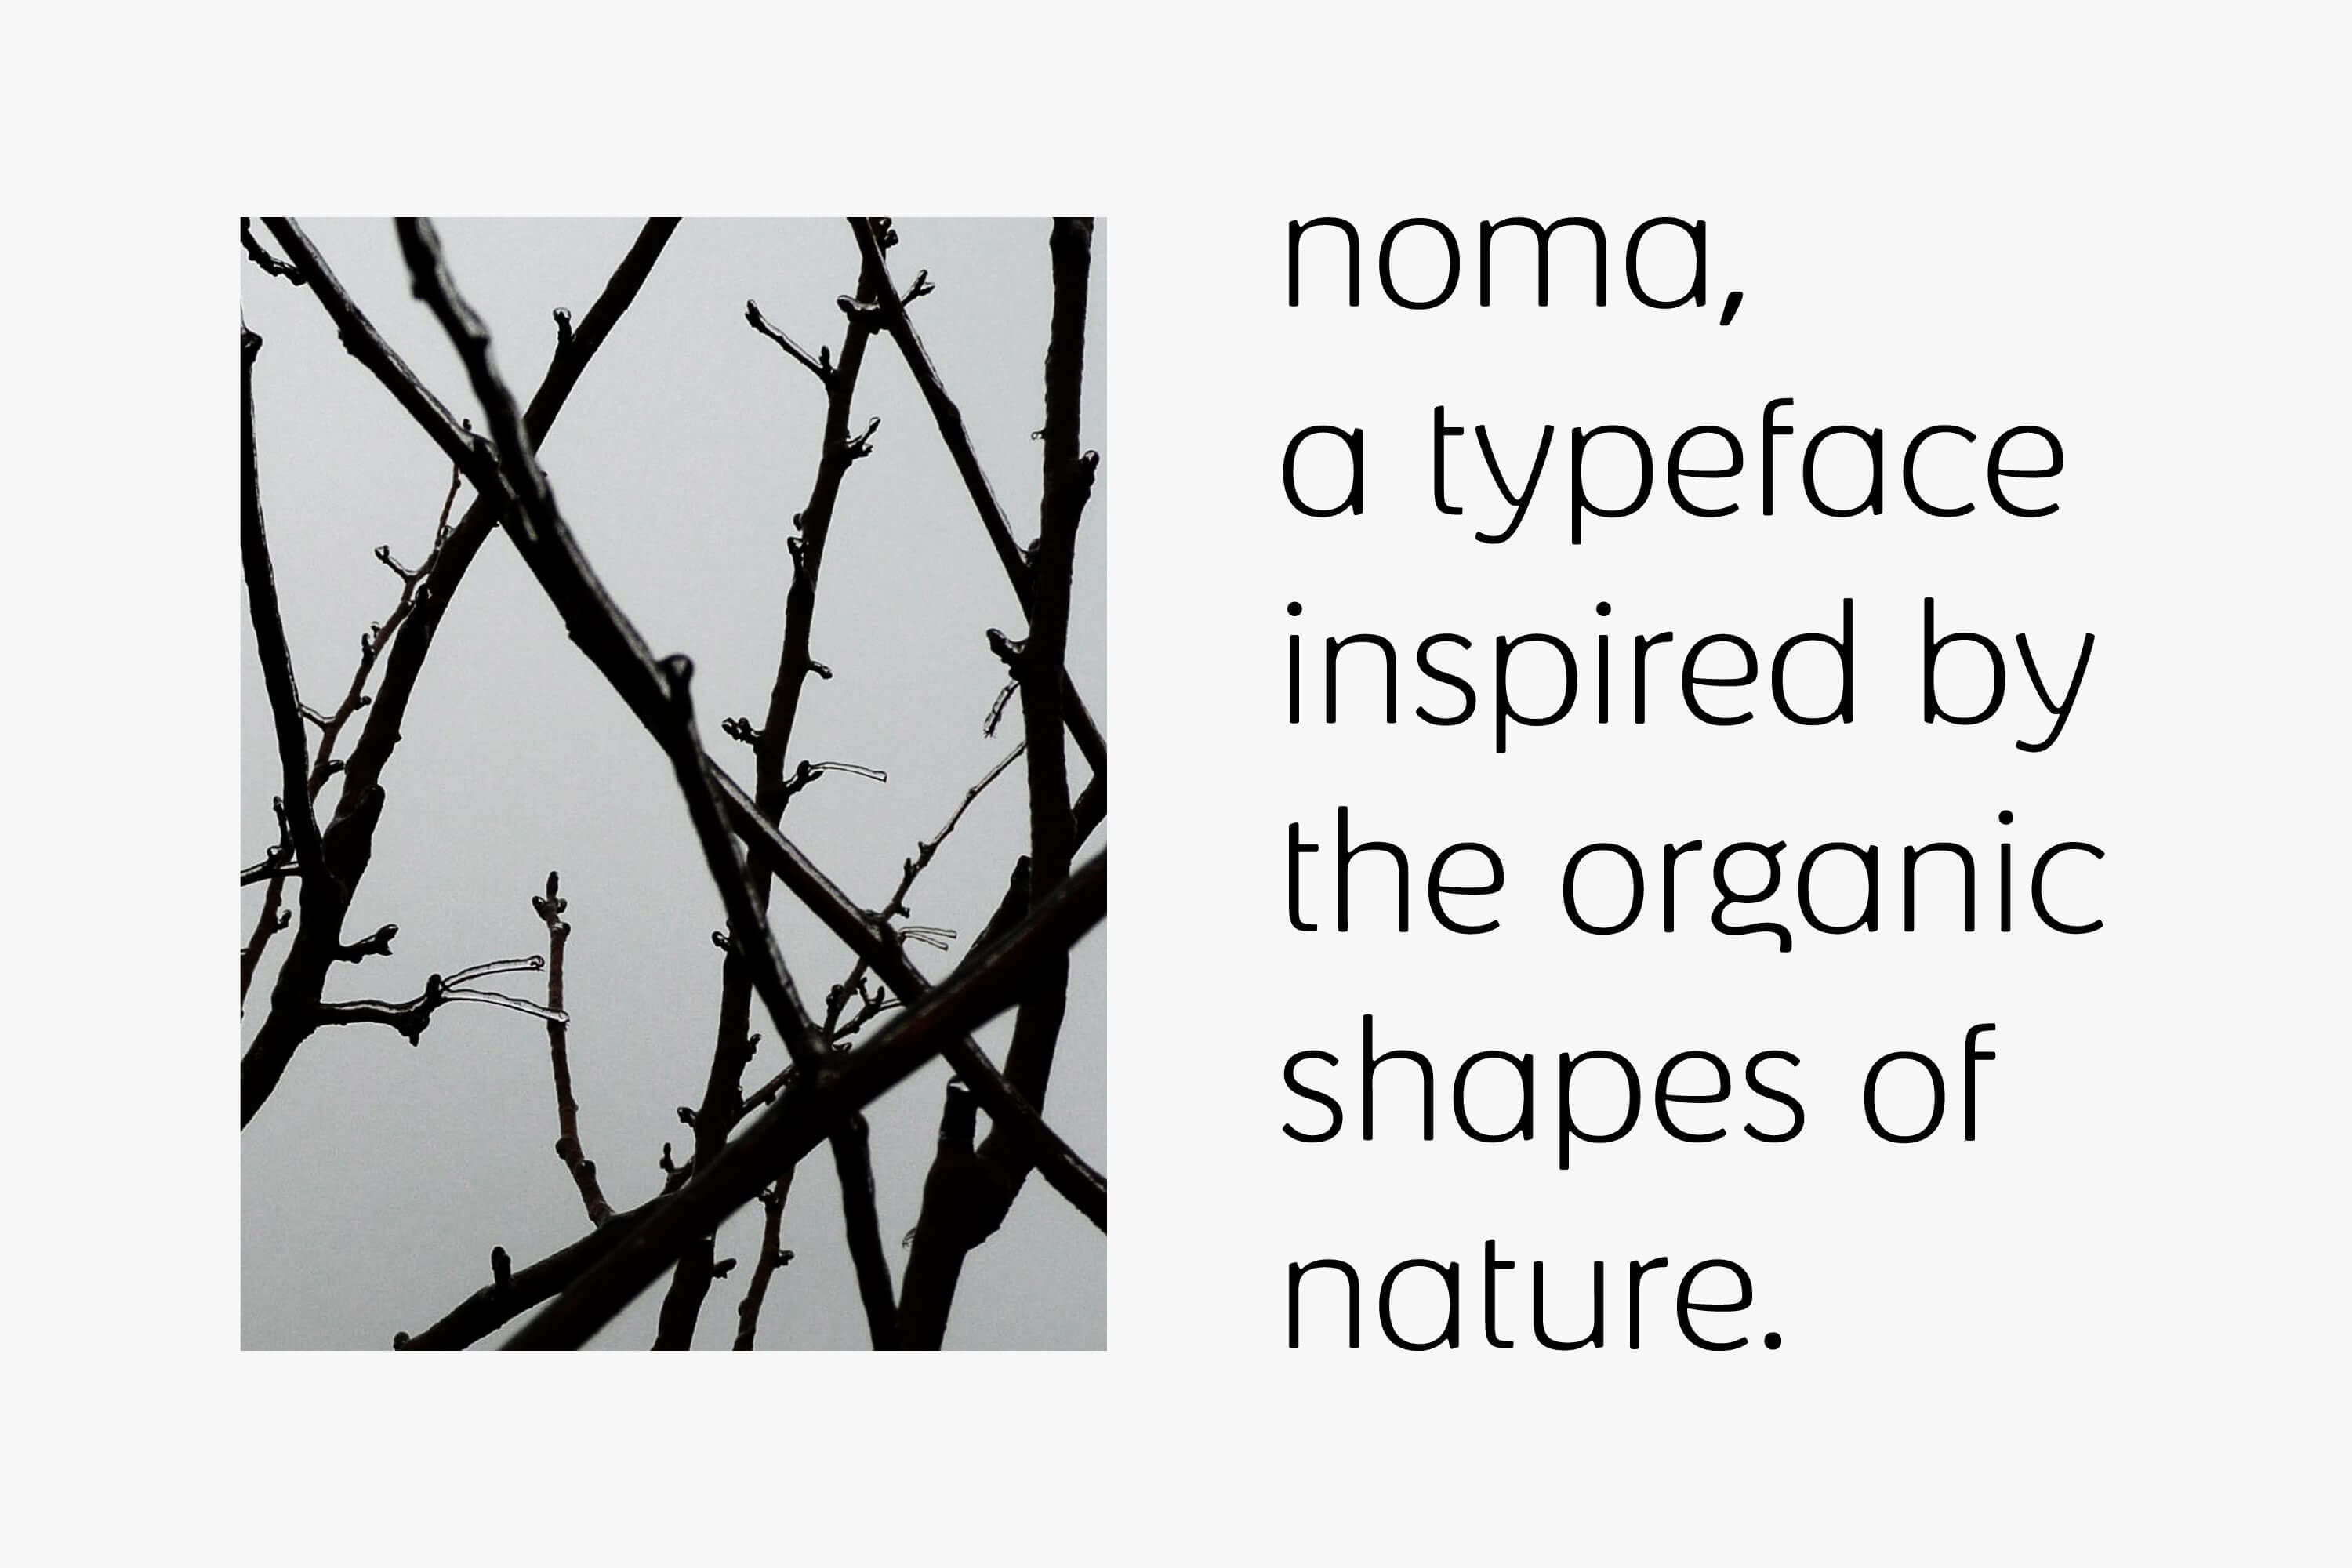 black and white image of tree branches and writing saying noma a typeface inspired by the organic shapes of nature